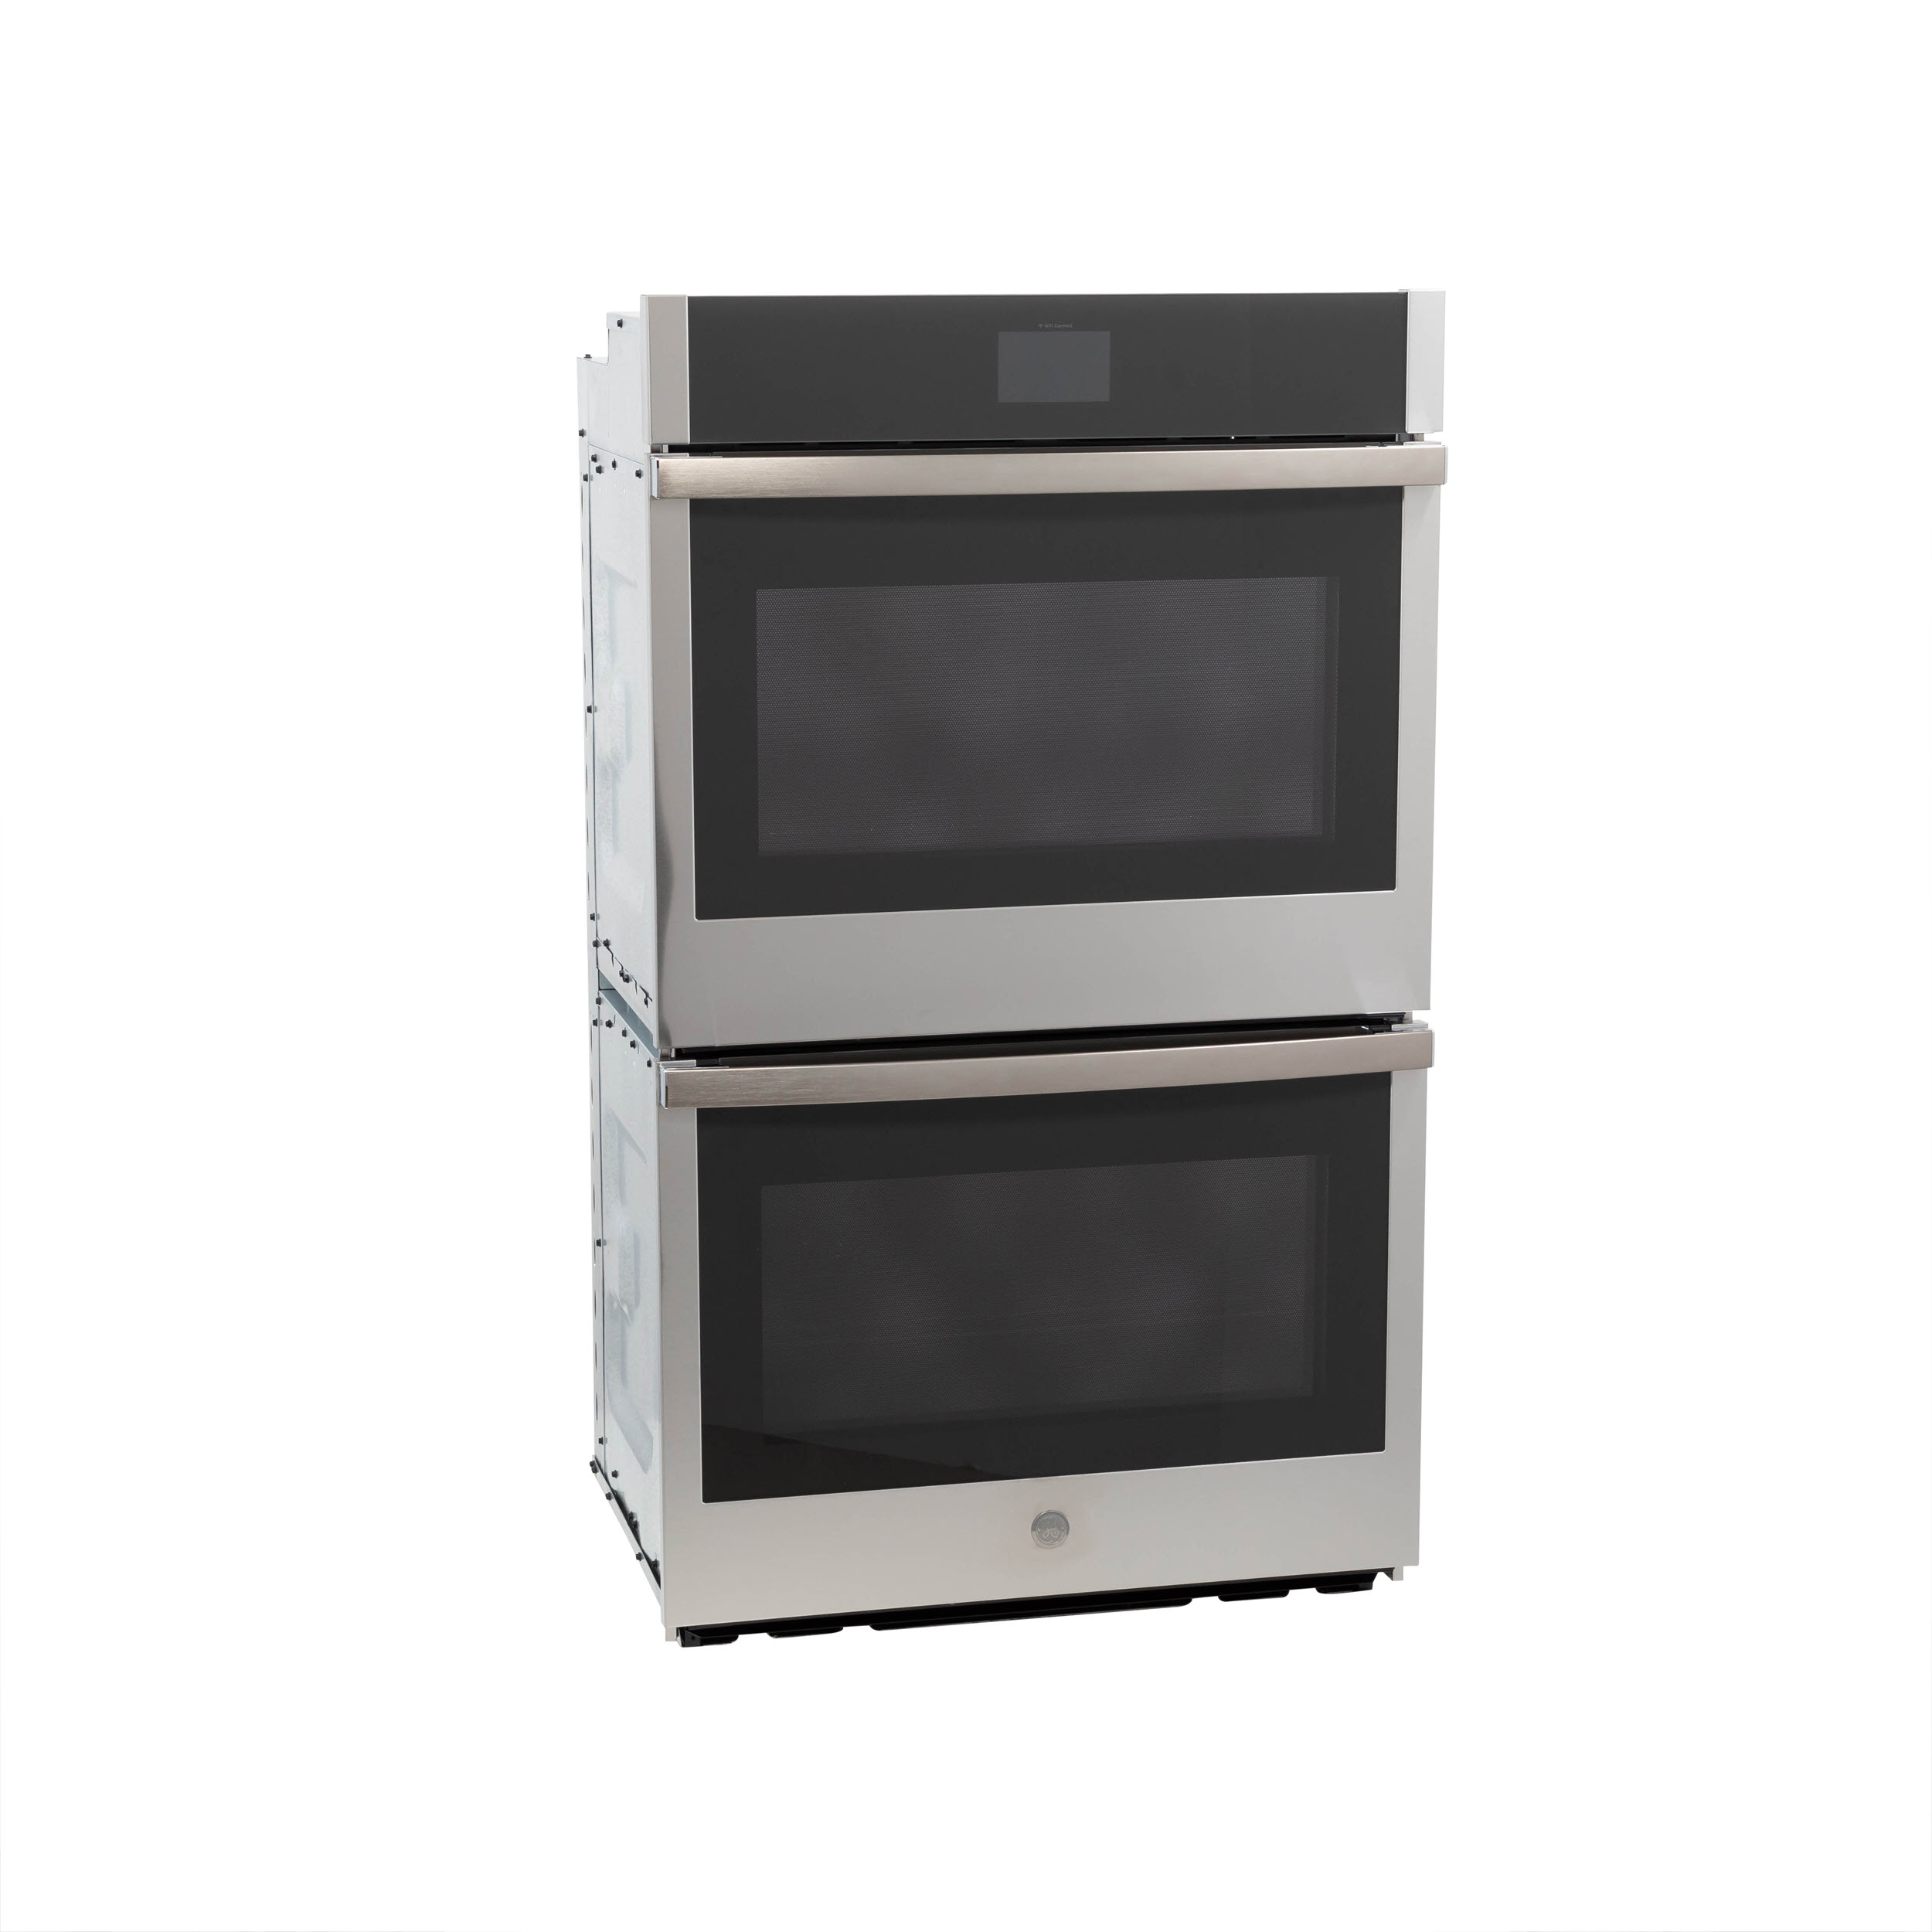 "Model: JTD5000SNSS | GE GE® 30"" Smart Built-In Self-Clean Convection Double Wall Oven with Never Scrub Racks"